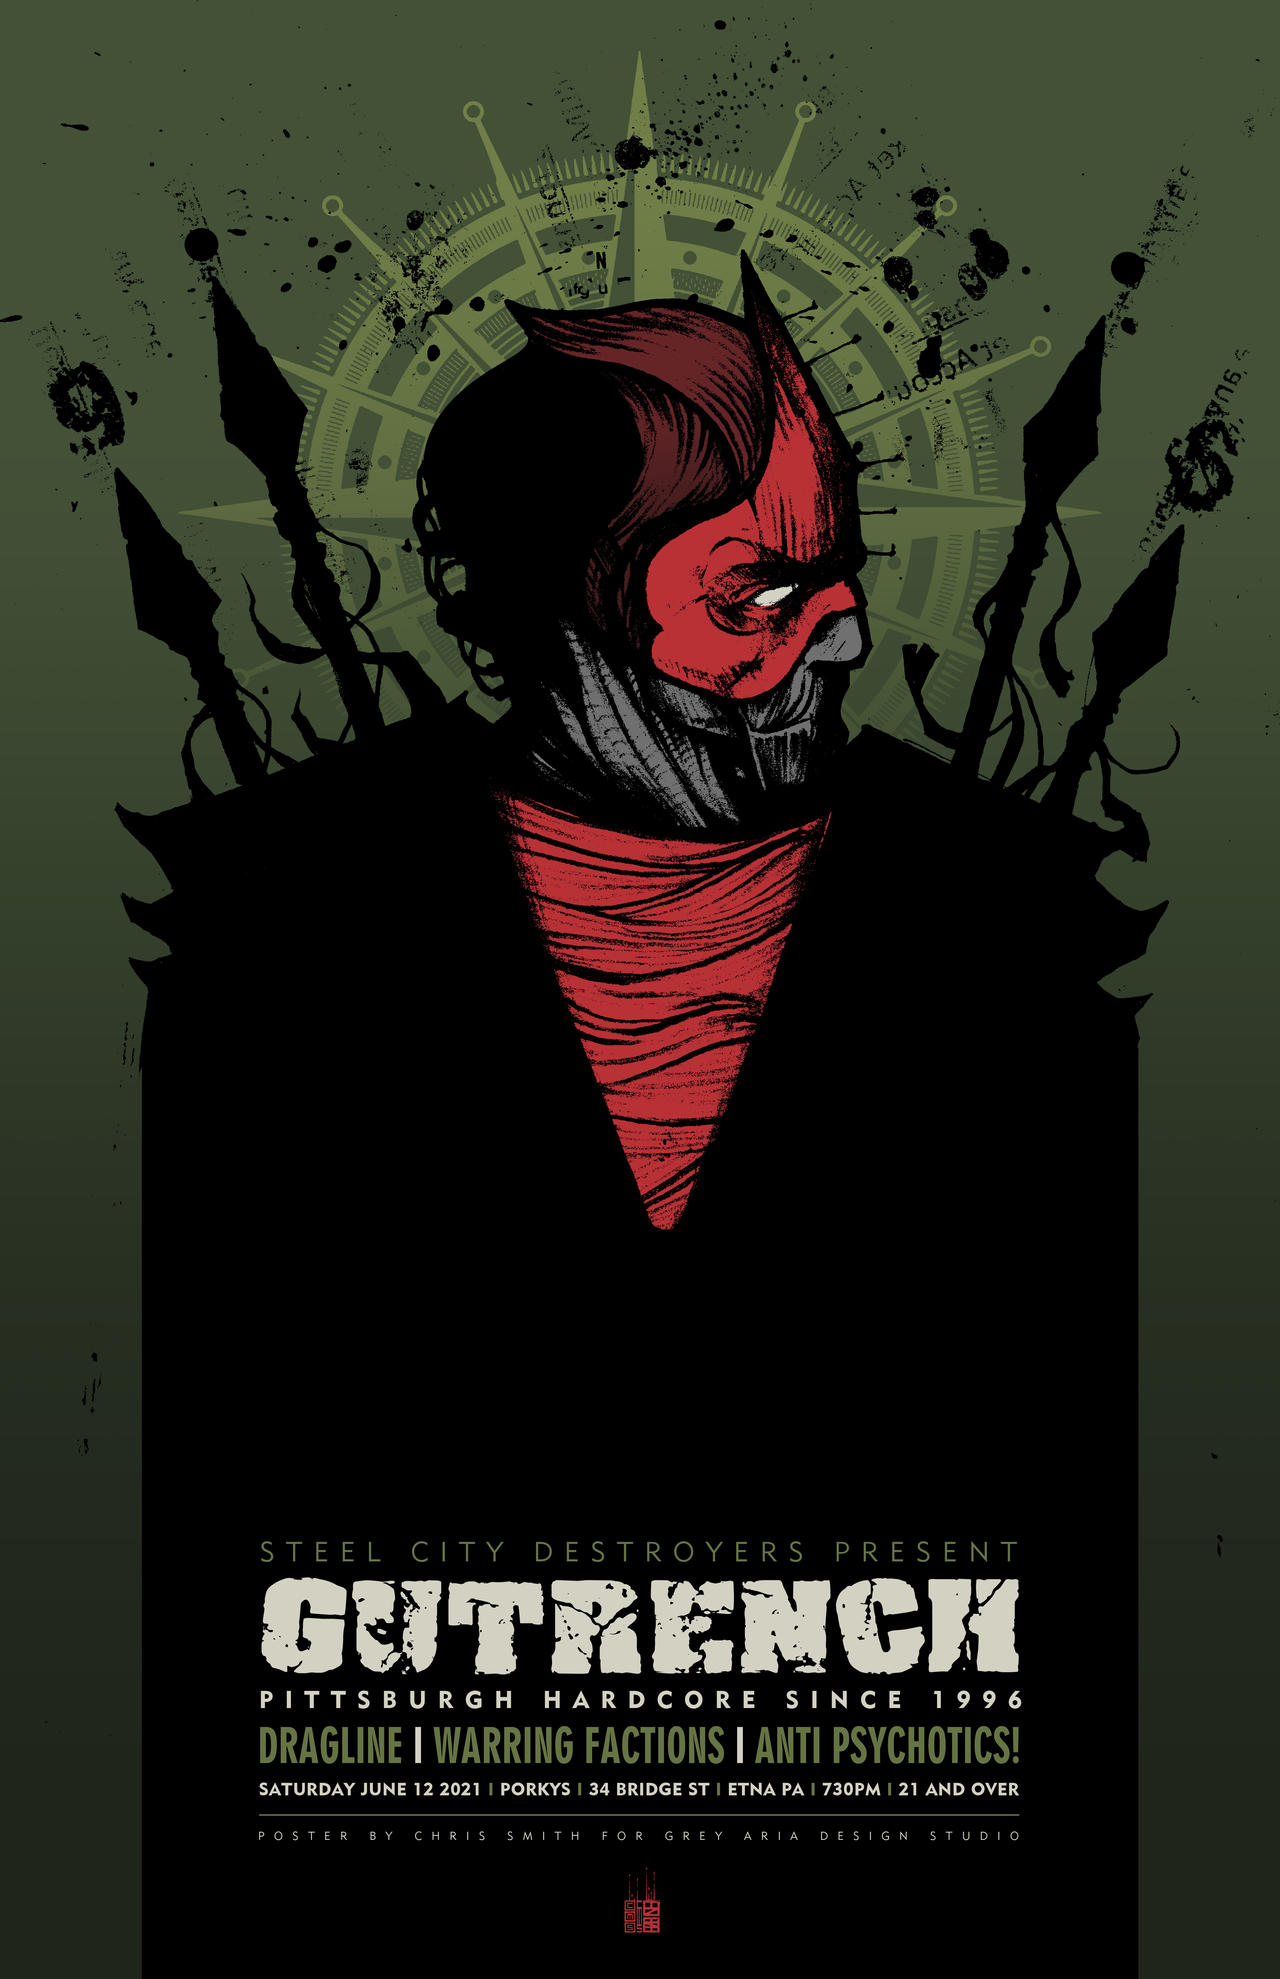 GUTRENCH POSTER